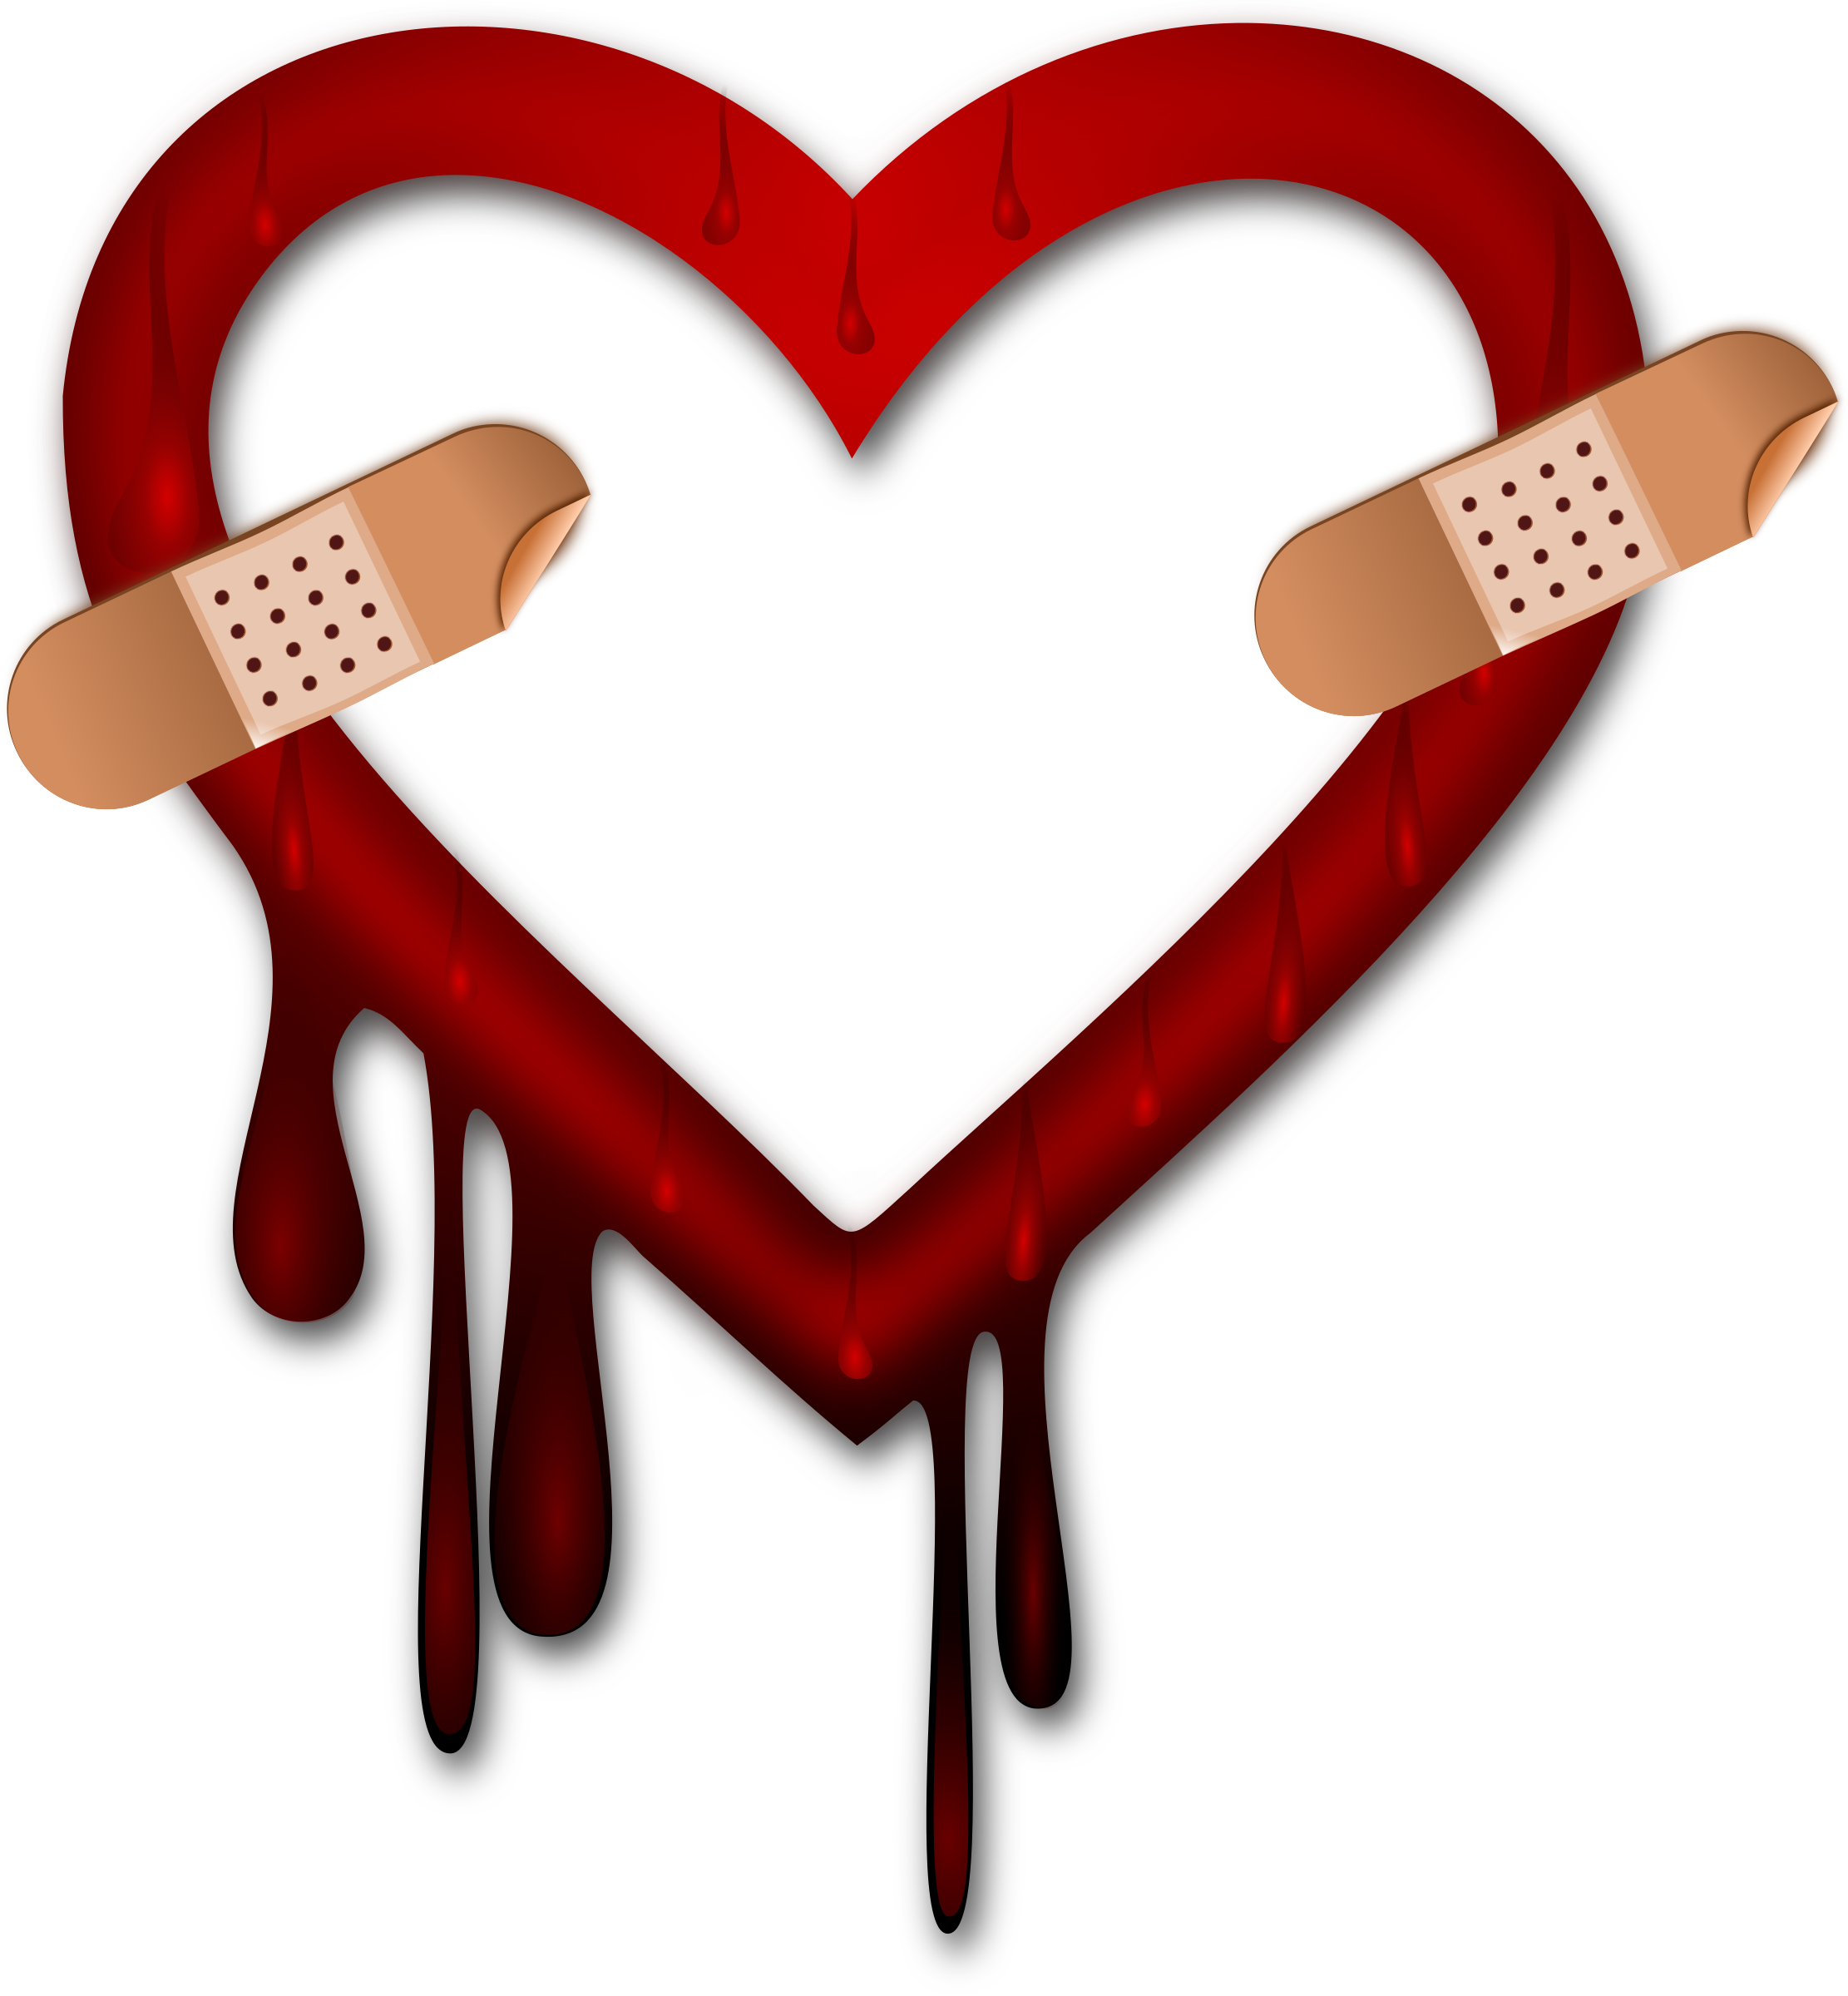 Heart Bleed Patch by Merlin2525